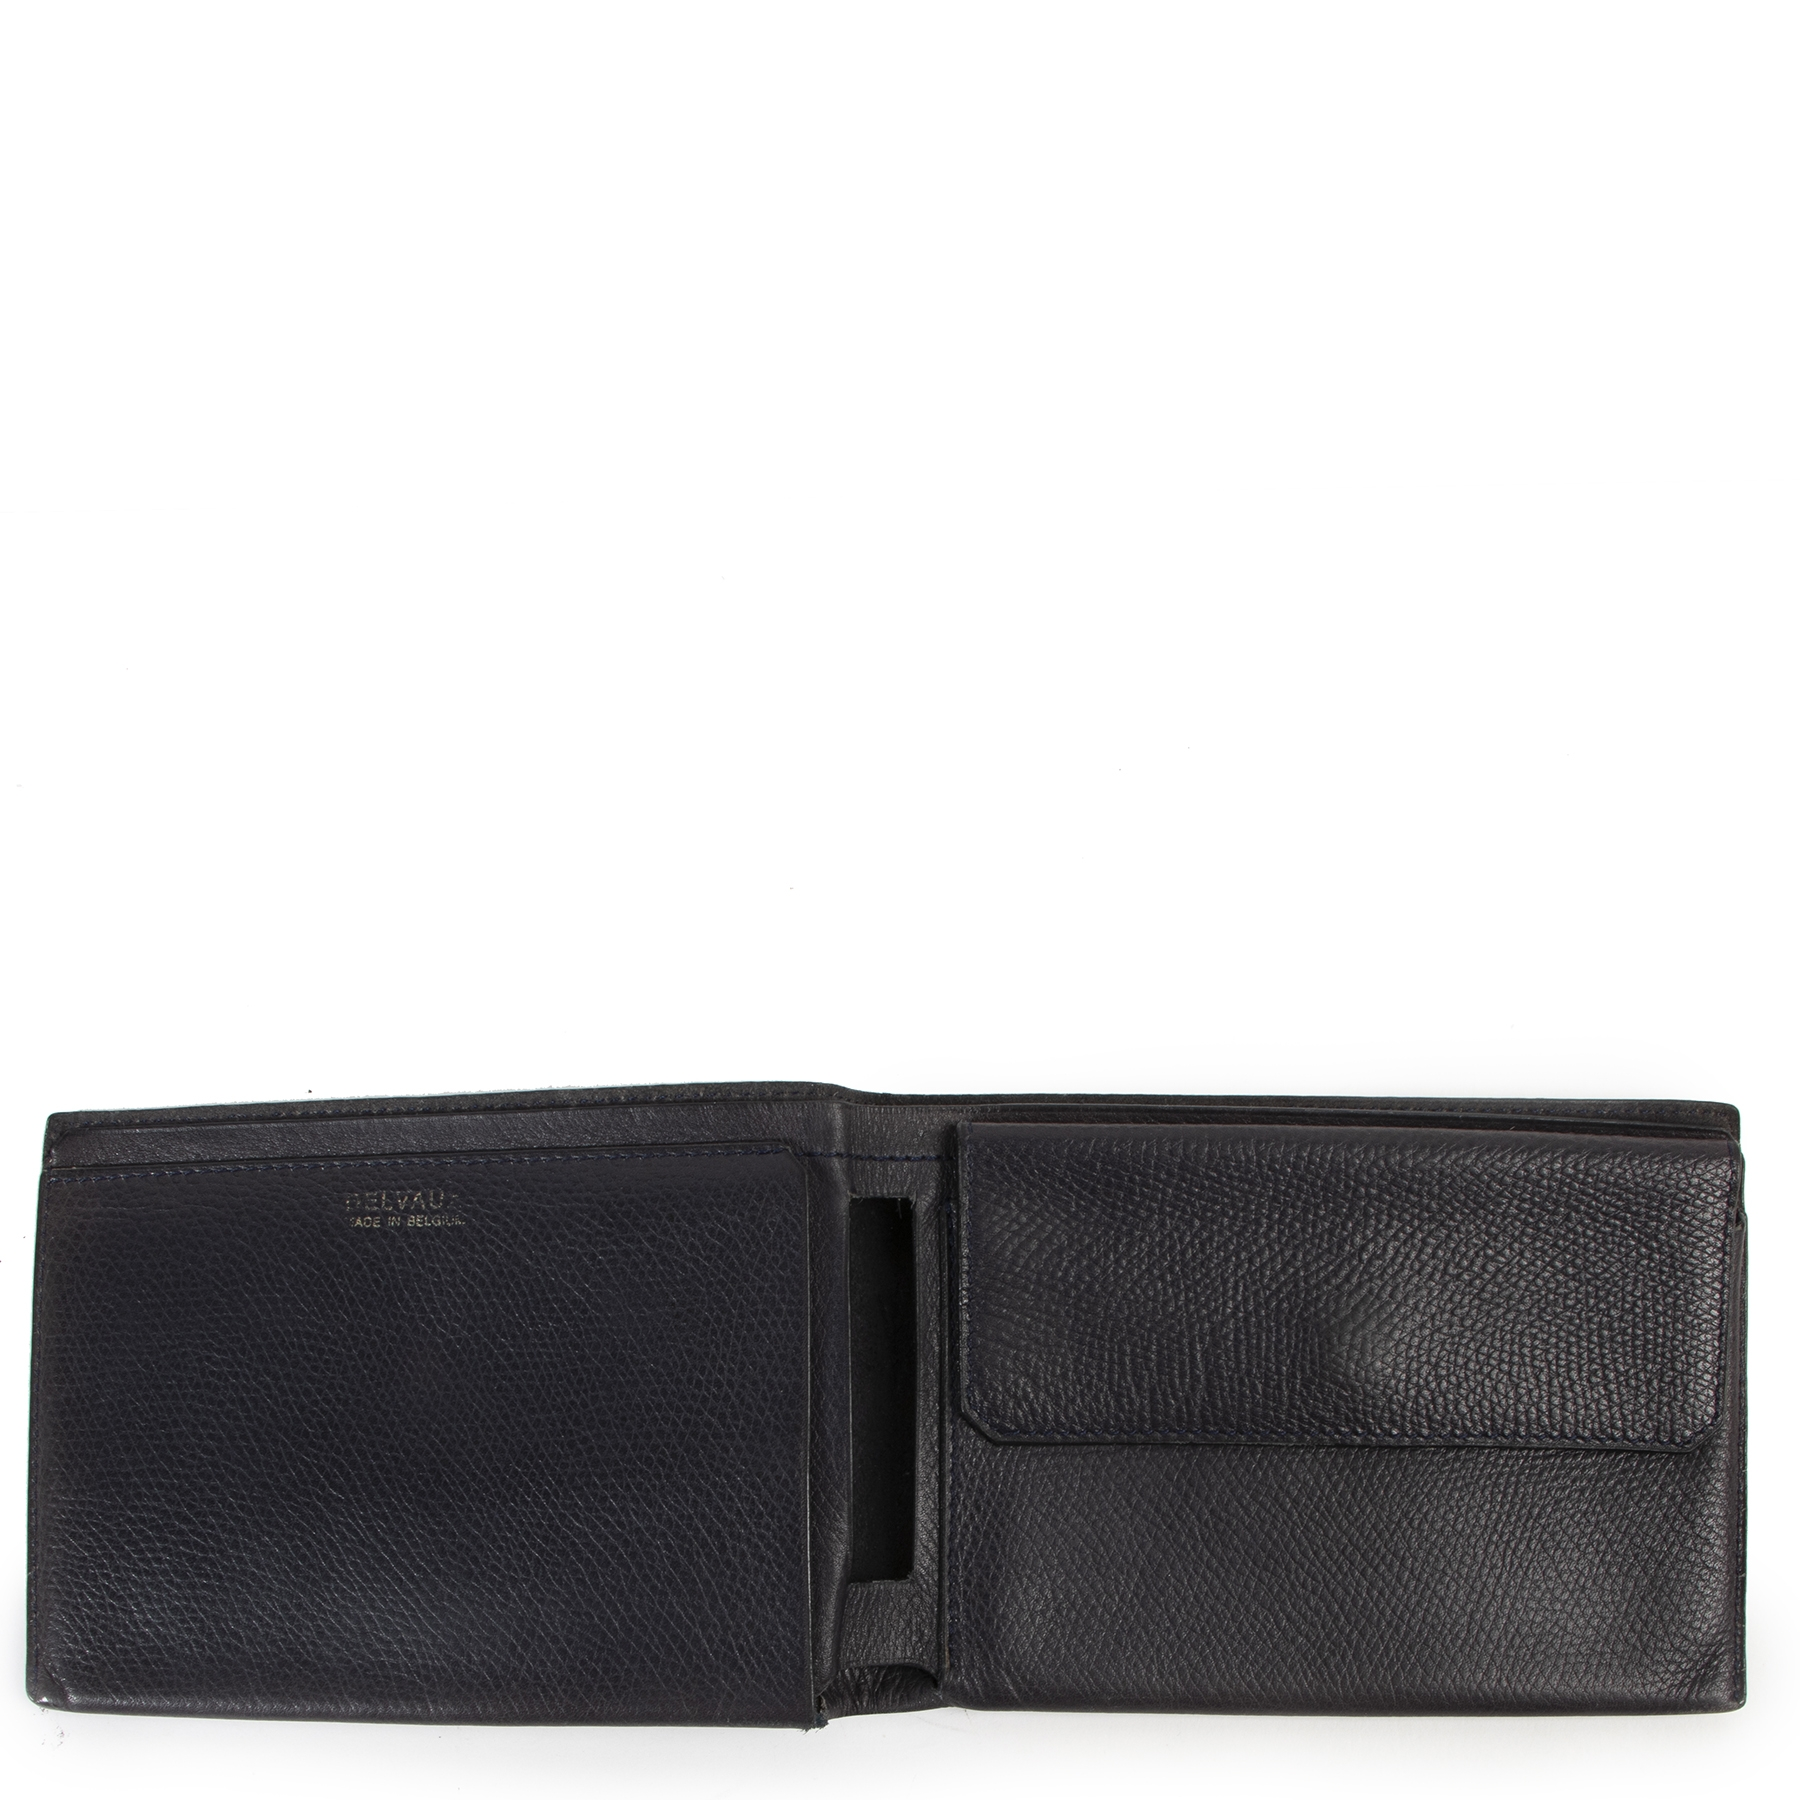 Are you looking for an authentic designer Delvaux Blue Flap Wallet?